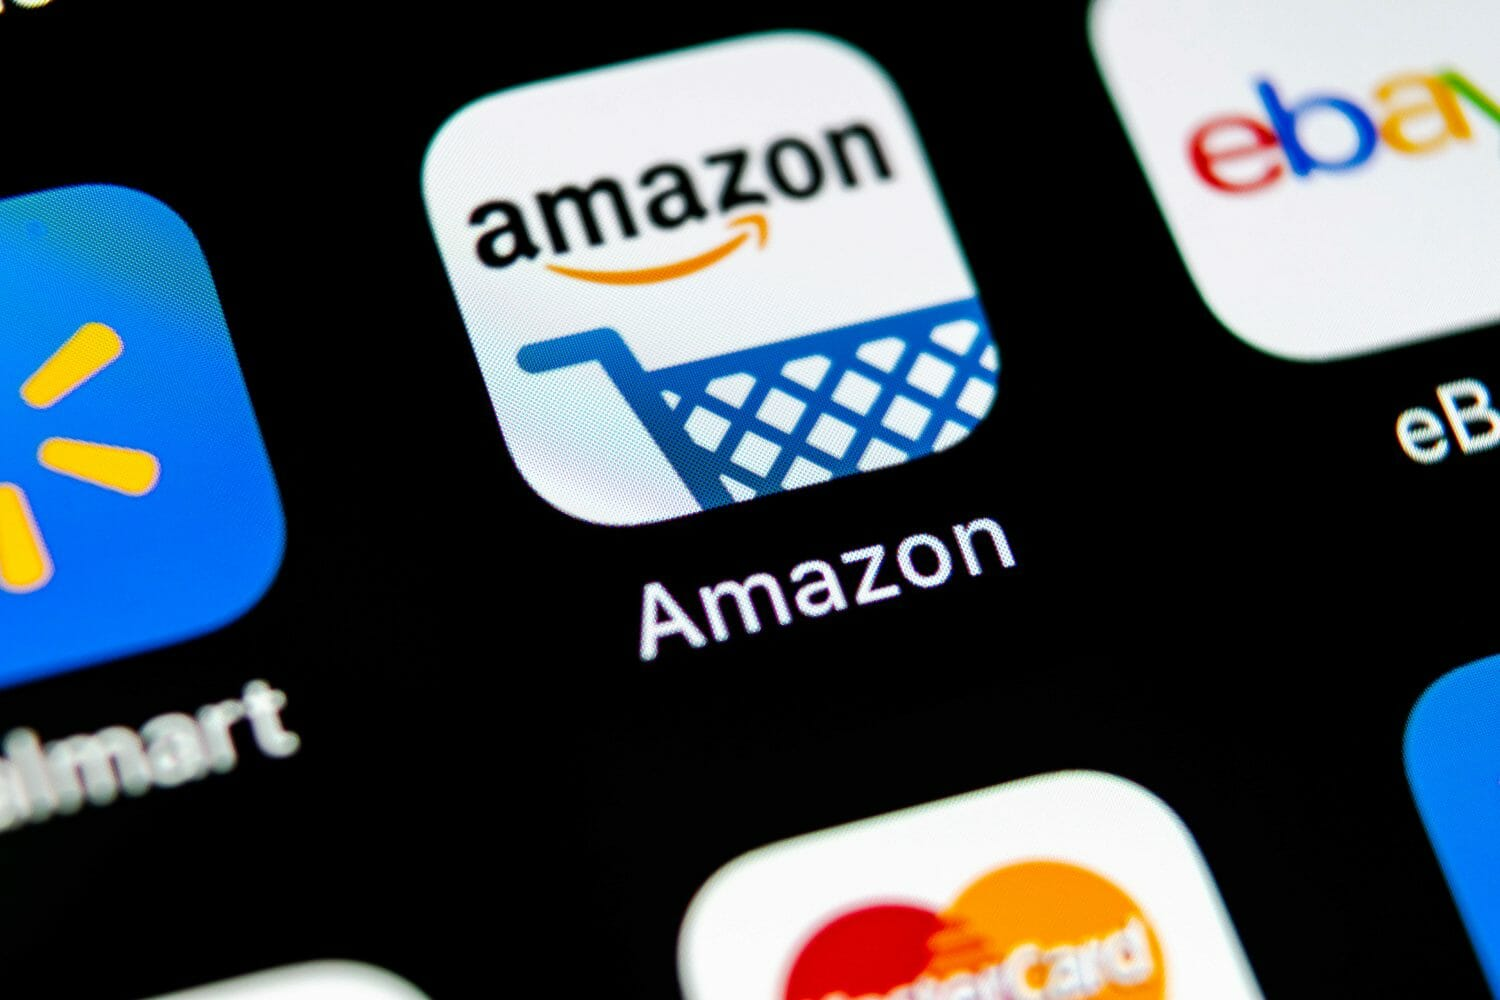 Amazon is gunning for the FMCG Market: Are you ready for the data-wars?